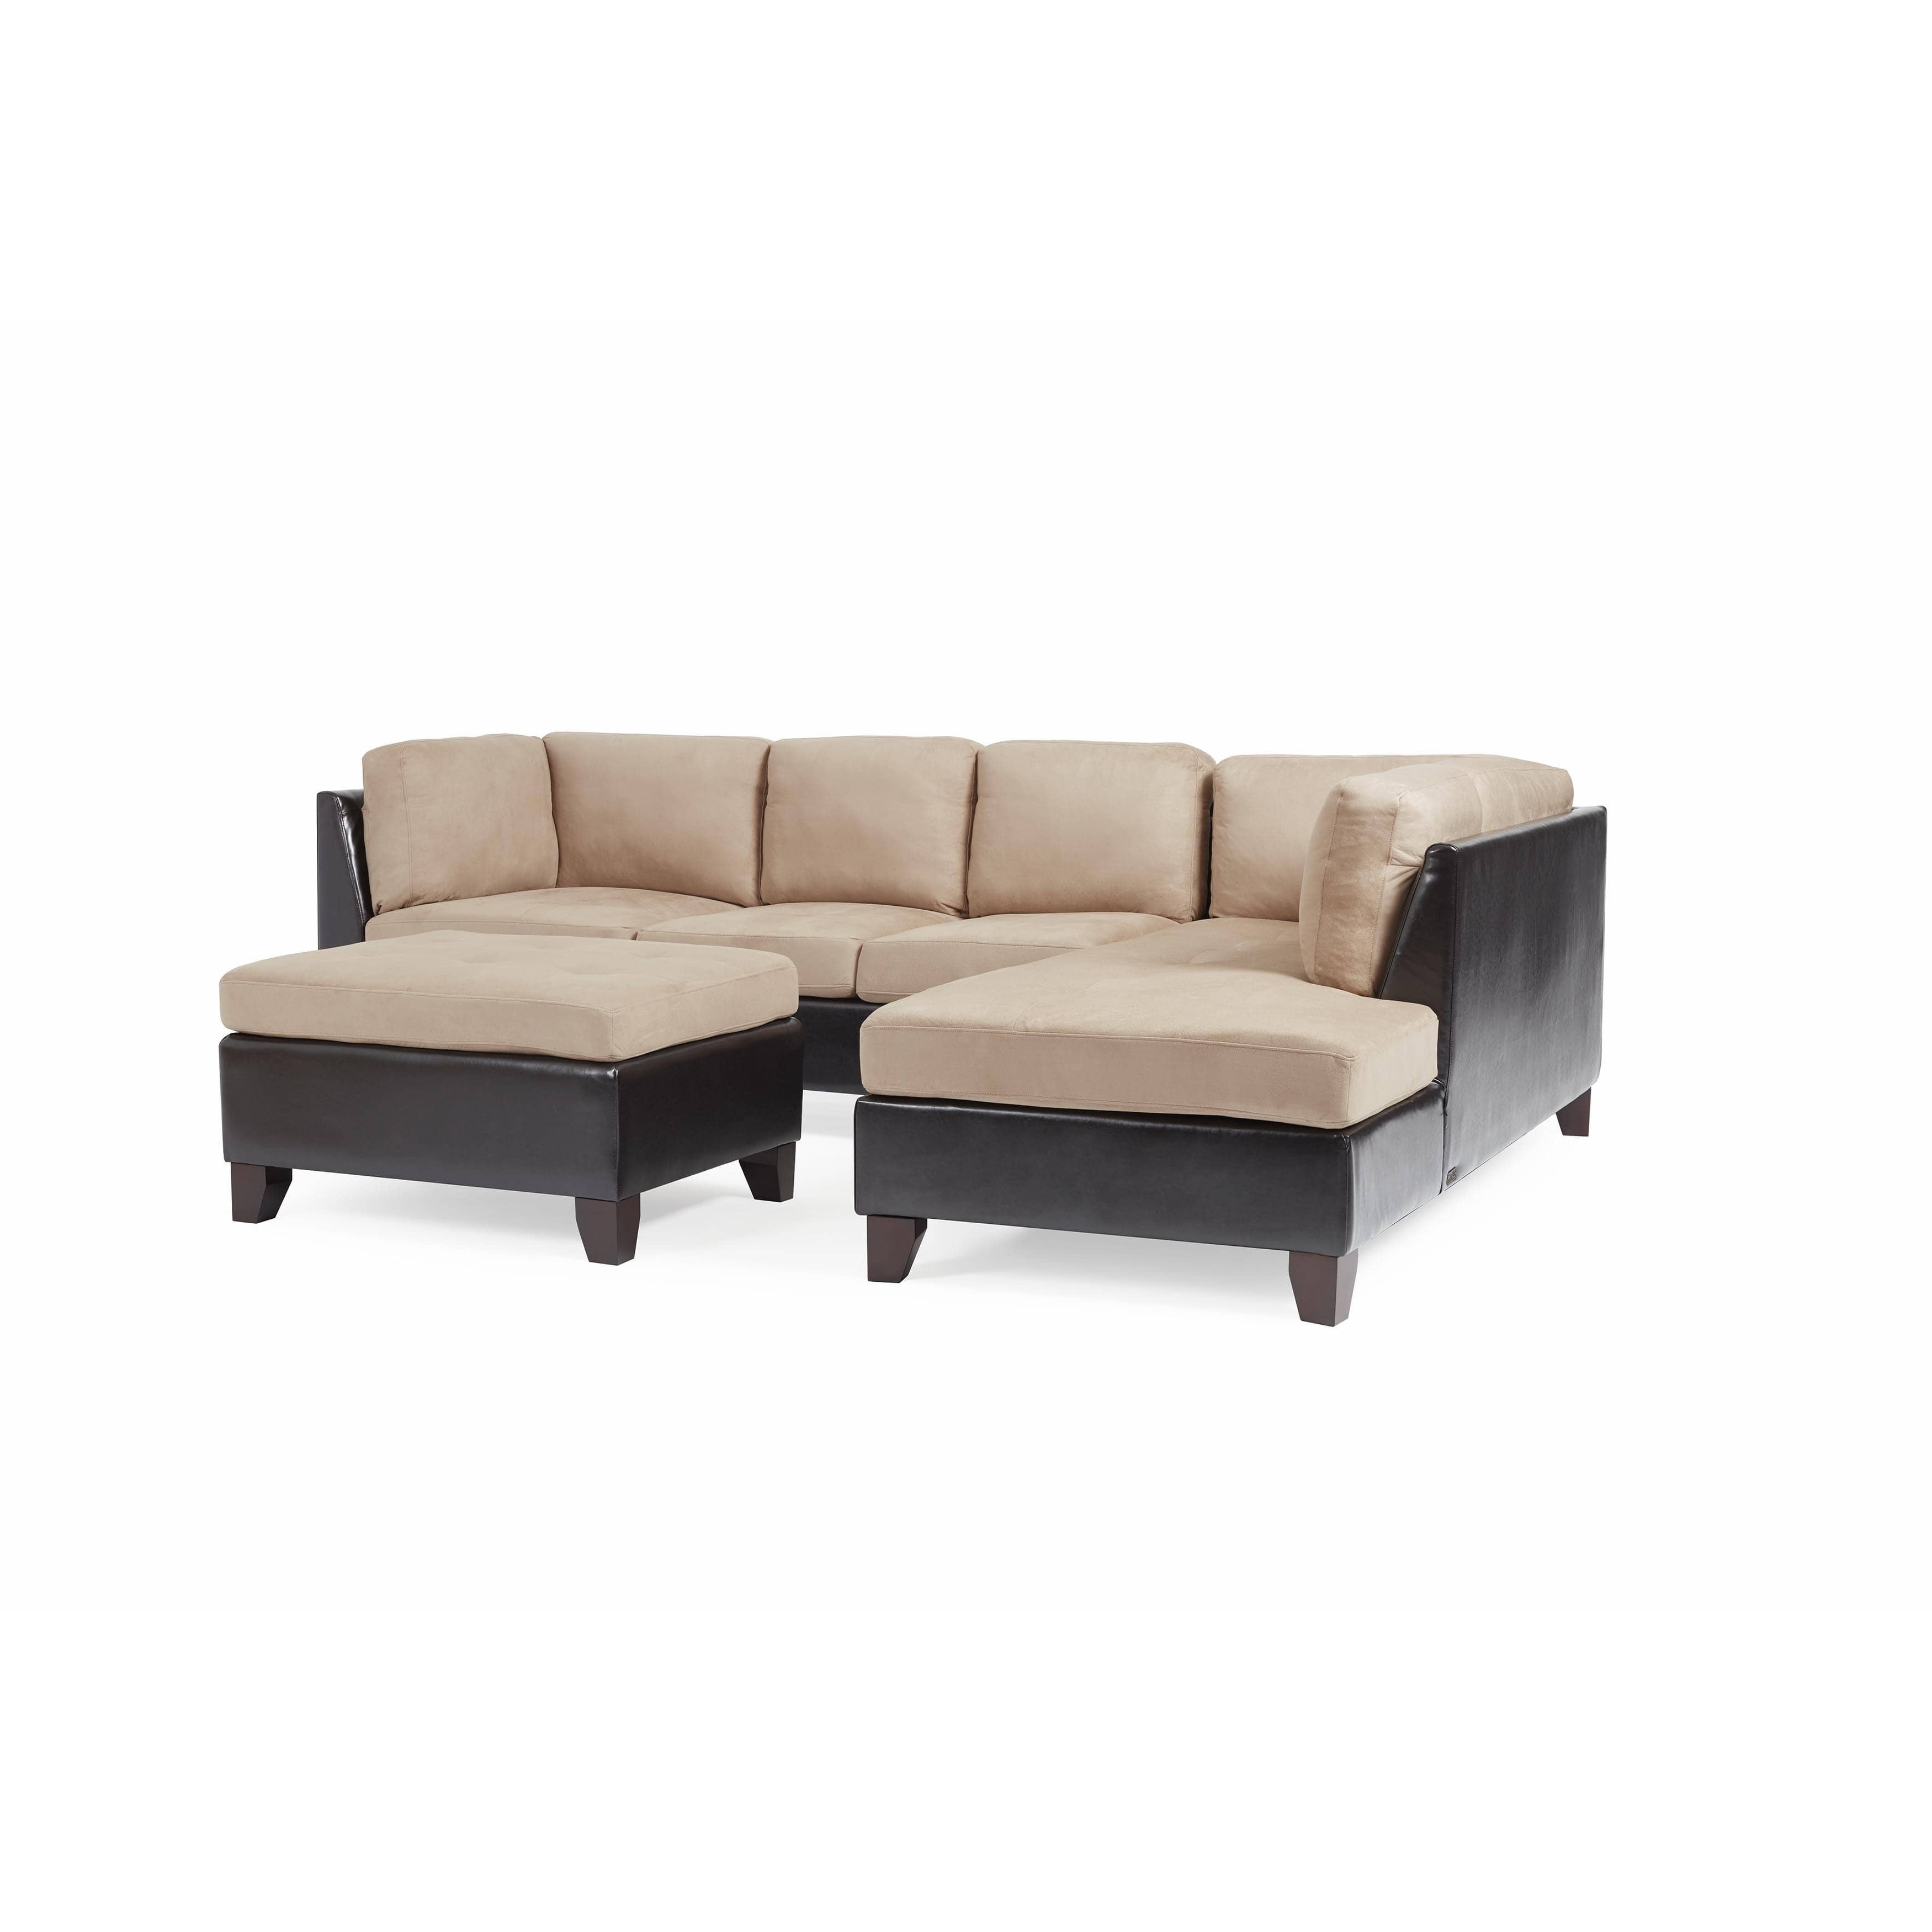 Charlotte Sectional Sofas With Regard To Favorite Abbyson Charlotte Beige Sectional Sofa And Ottoman – Free Shipping (View 7 of 20)